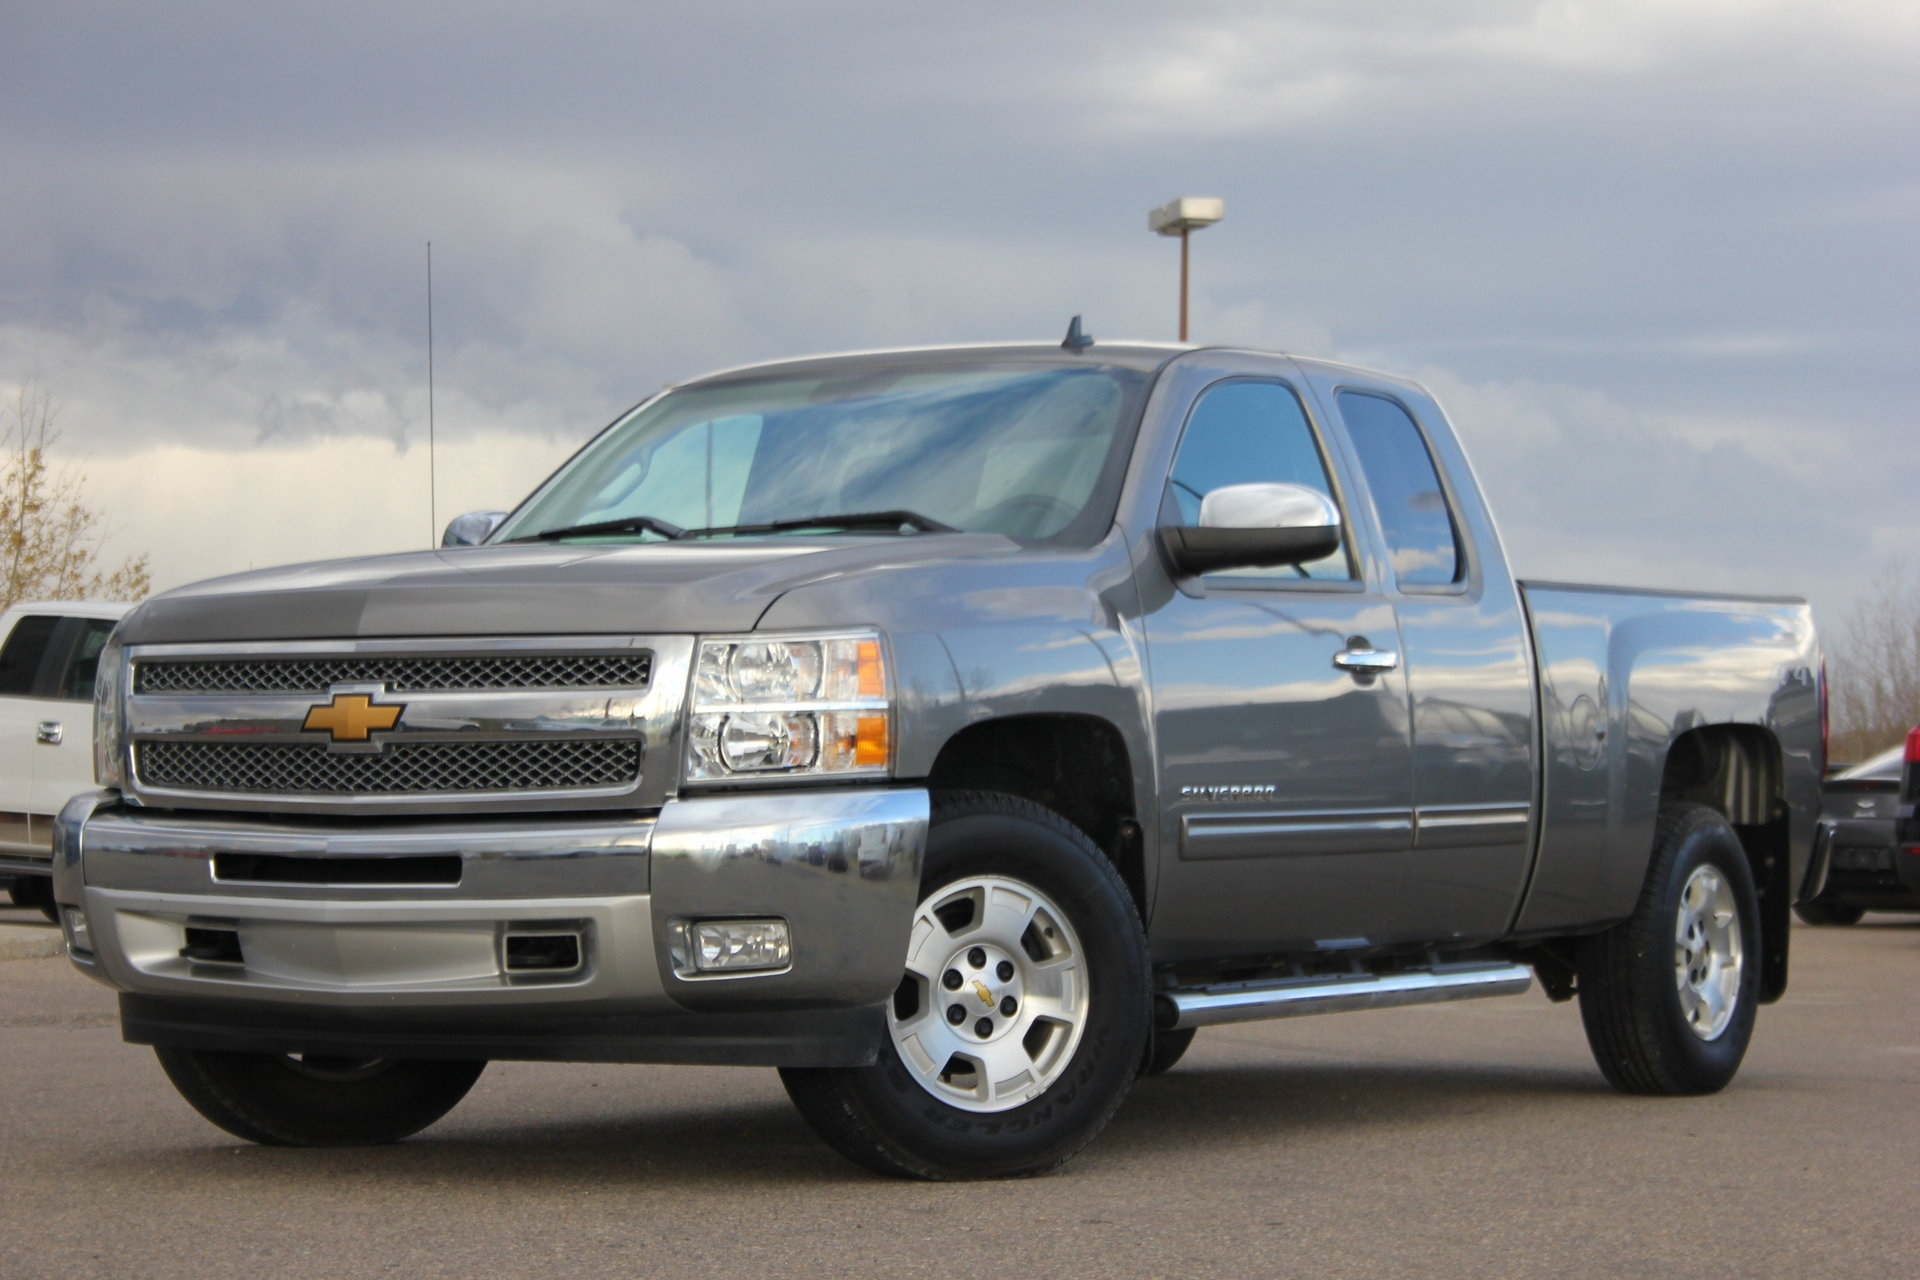 2013 chevrolet silverado 1500 4wd ext cab 143 5 lt for sale 68101 mcg. Black Bedroom Furniture Sets. Home Design Ideas